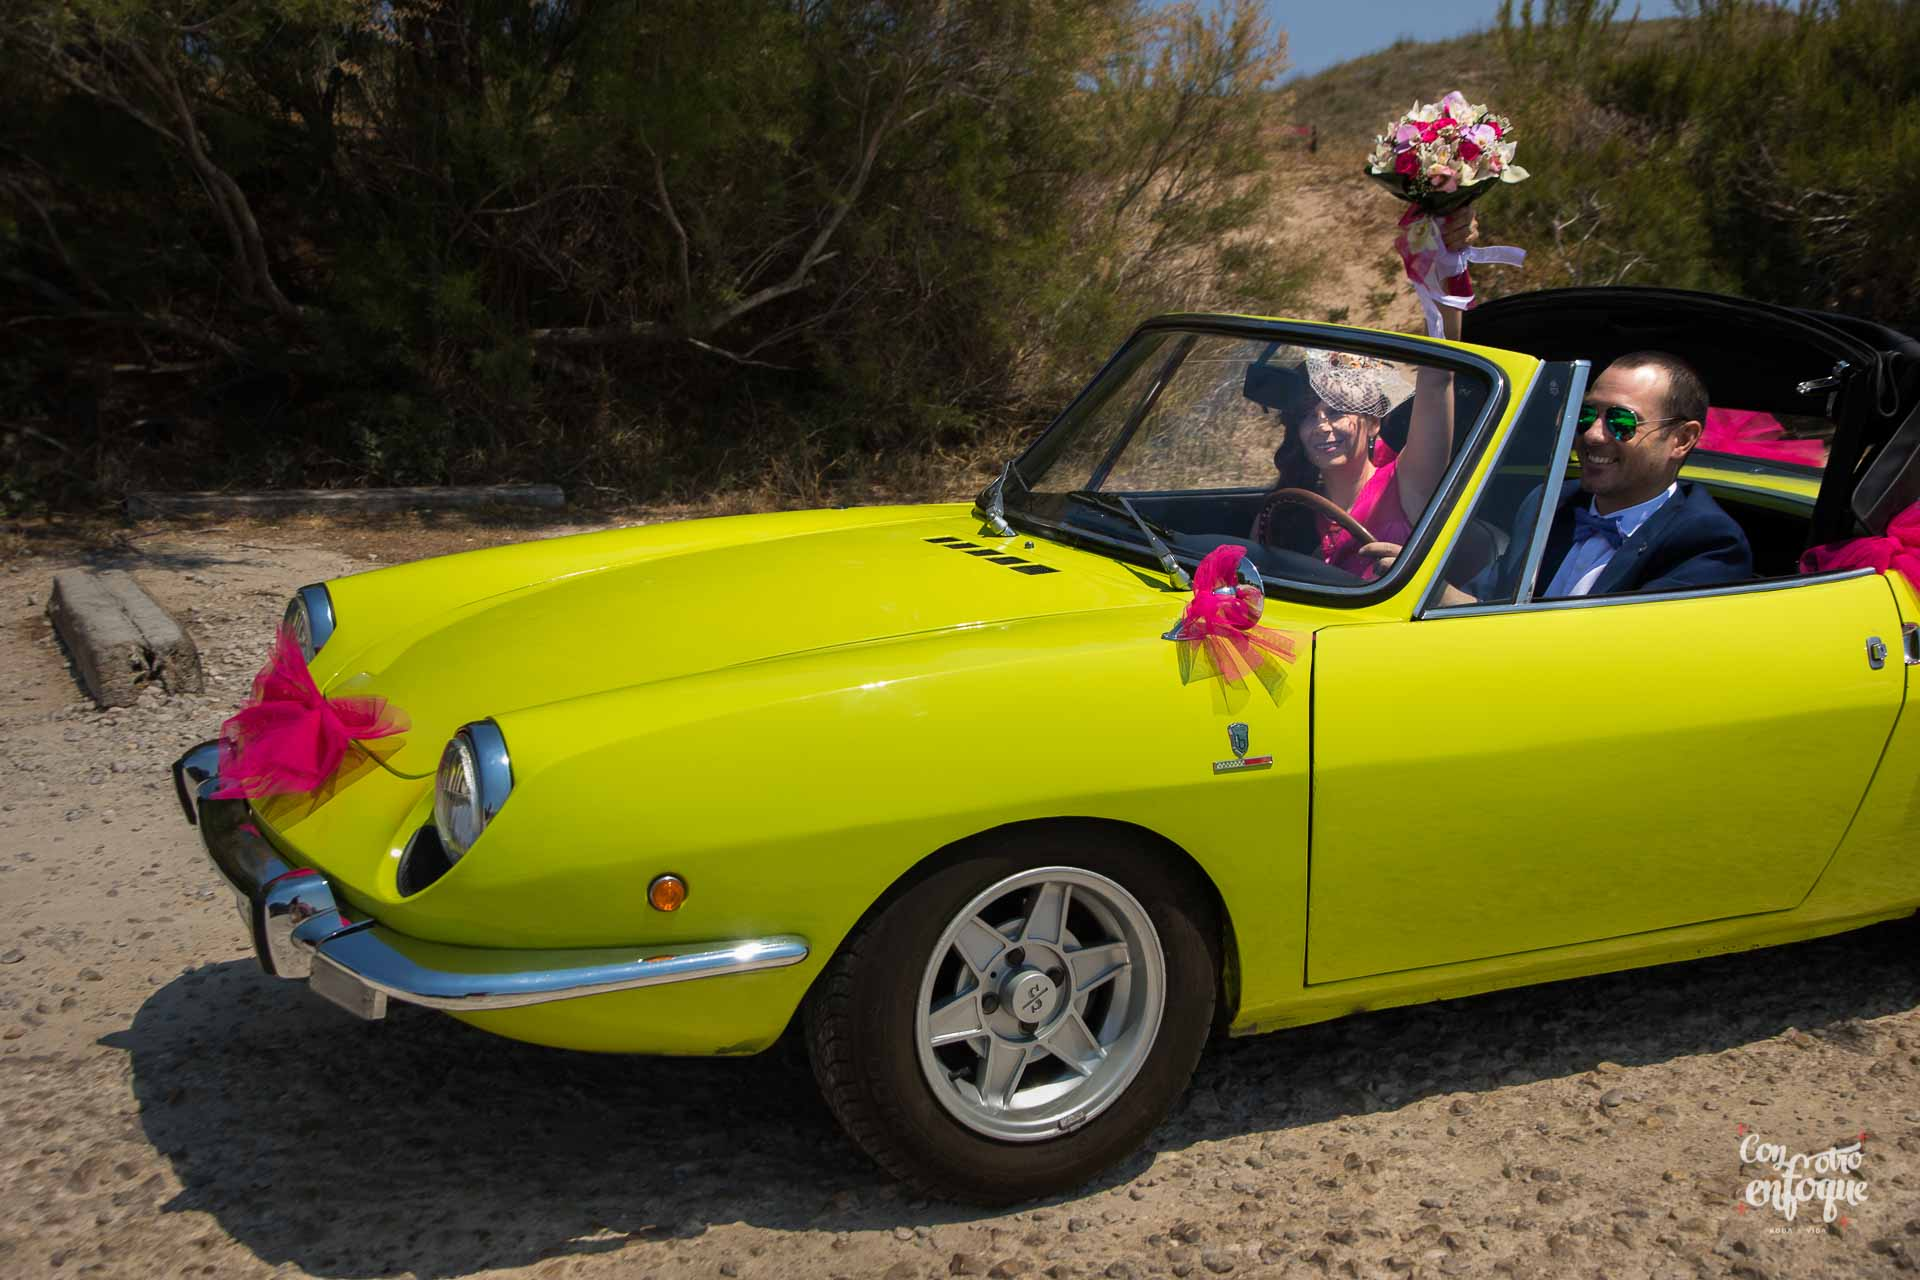 Boda civil en Valencia con coche antiguo descapotable